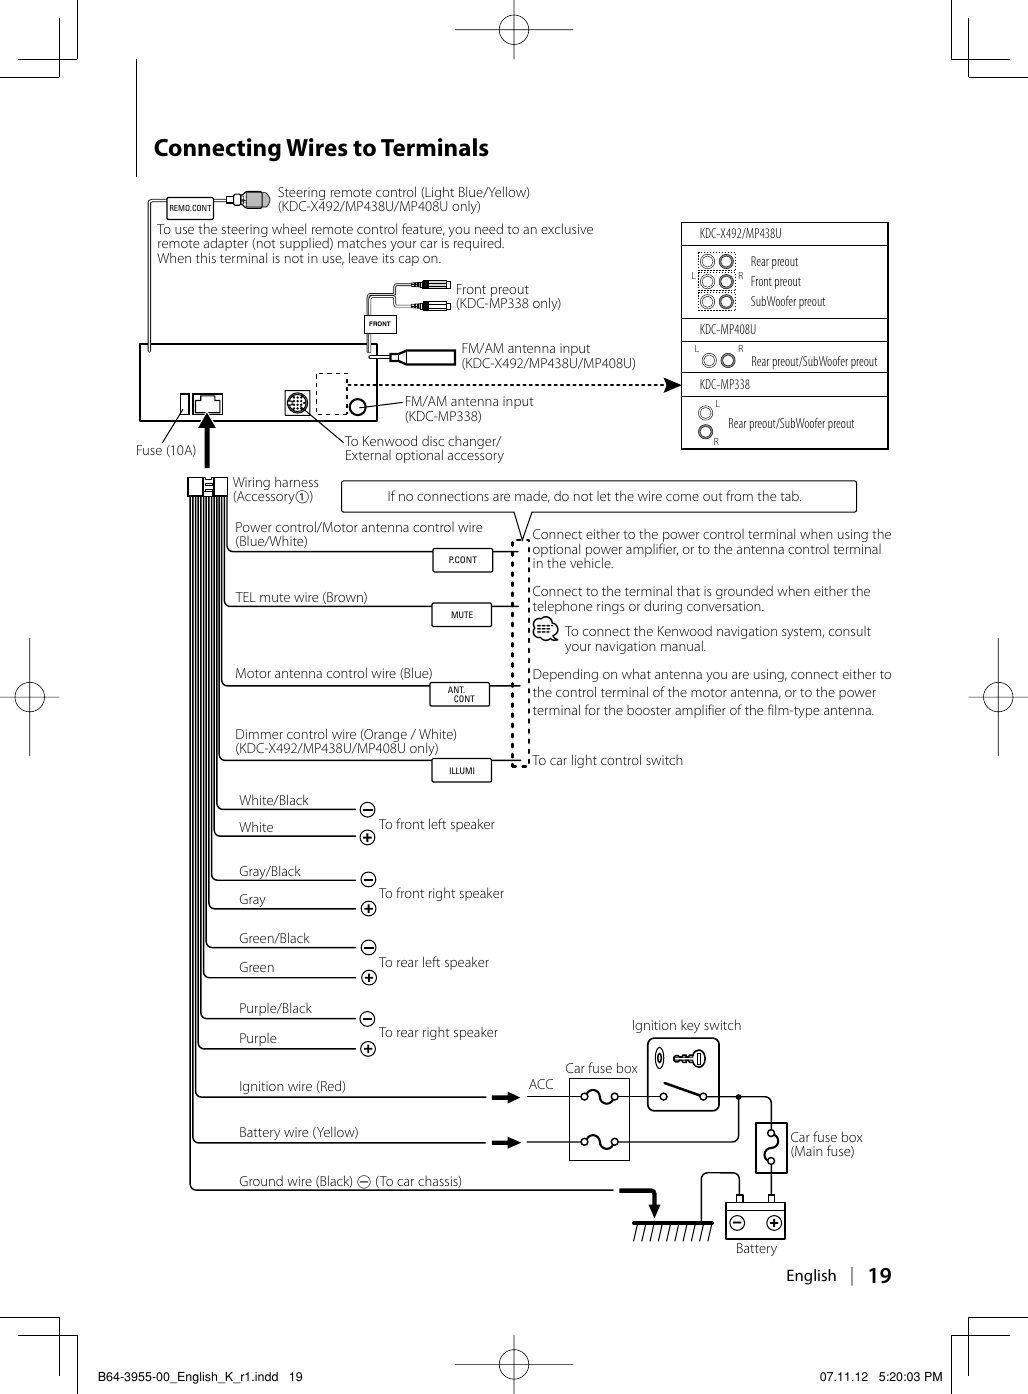 Kenwood Kdc Mp245 Wiring Diagram from usermanual.wiki